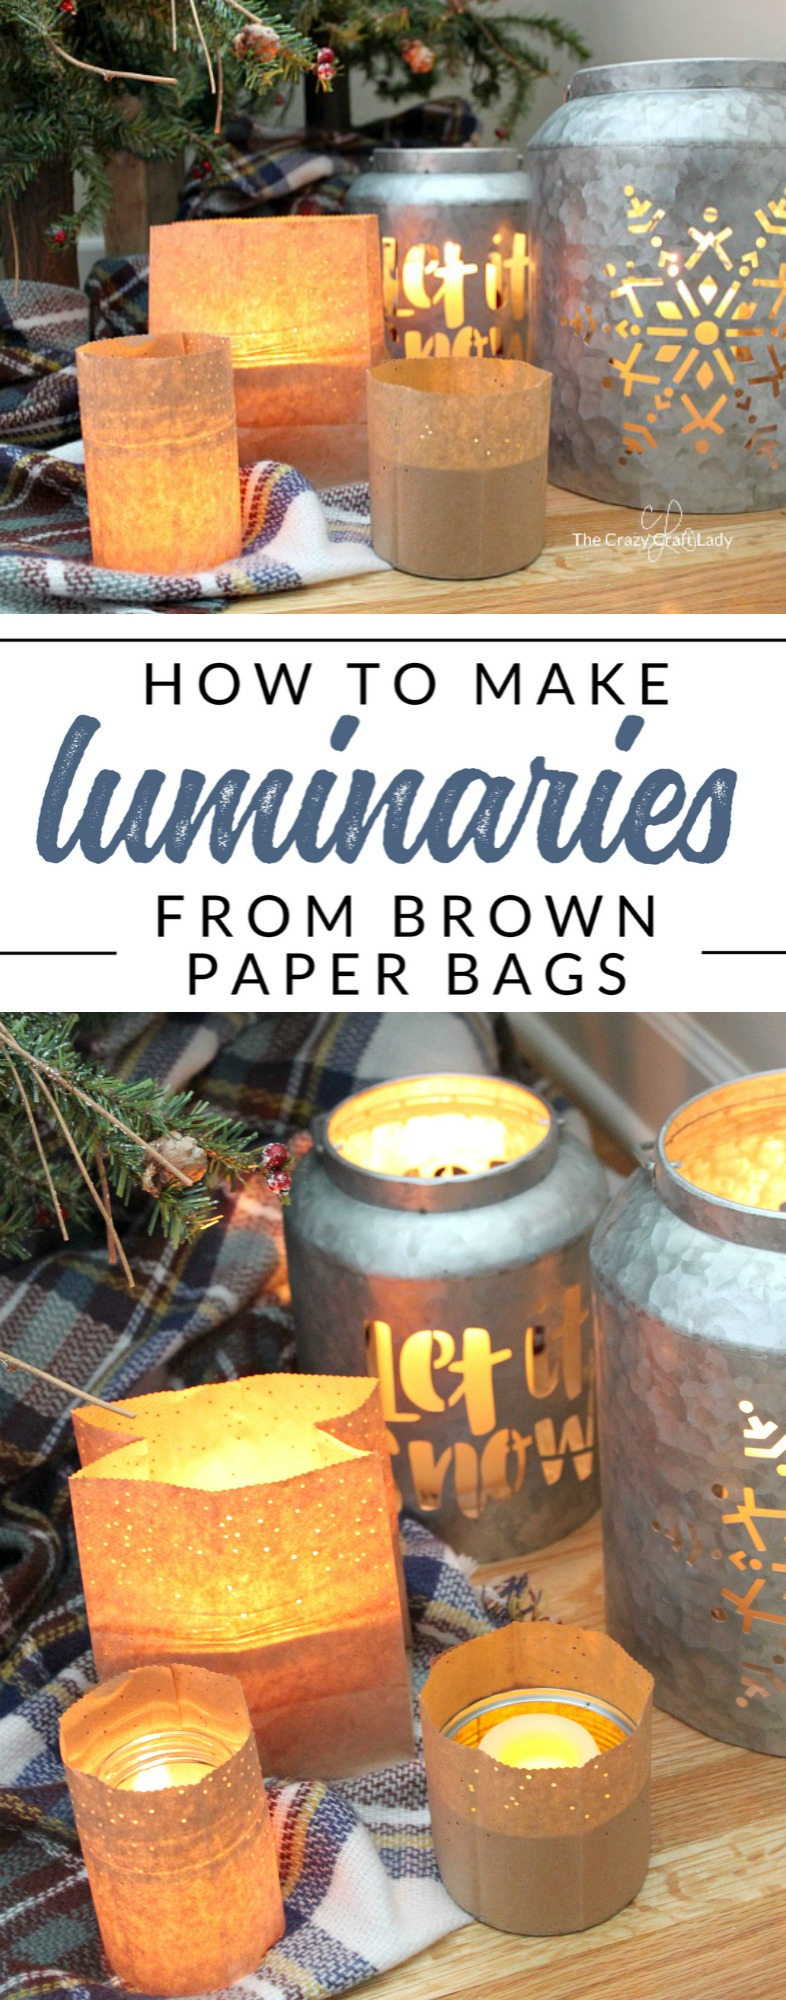 How to make simple brown paper bag lanterns, perfect for winter crafting. This easy paper craft will cozy up any space with candles and warmth.